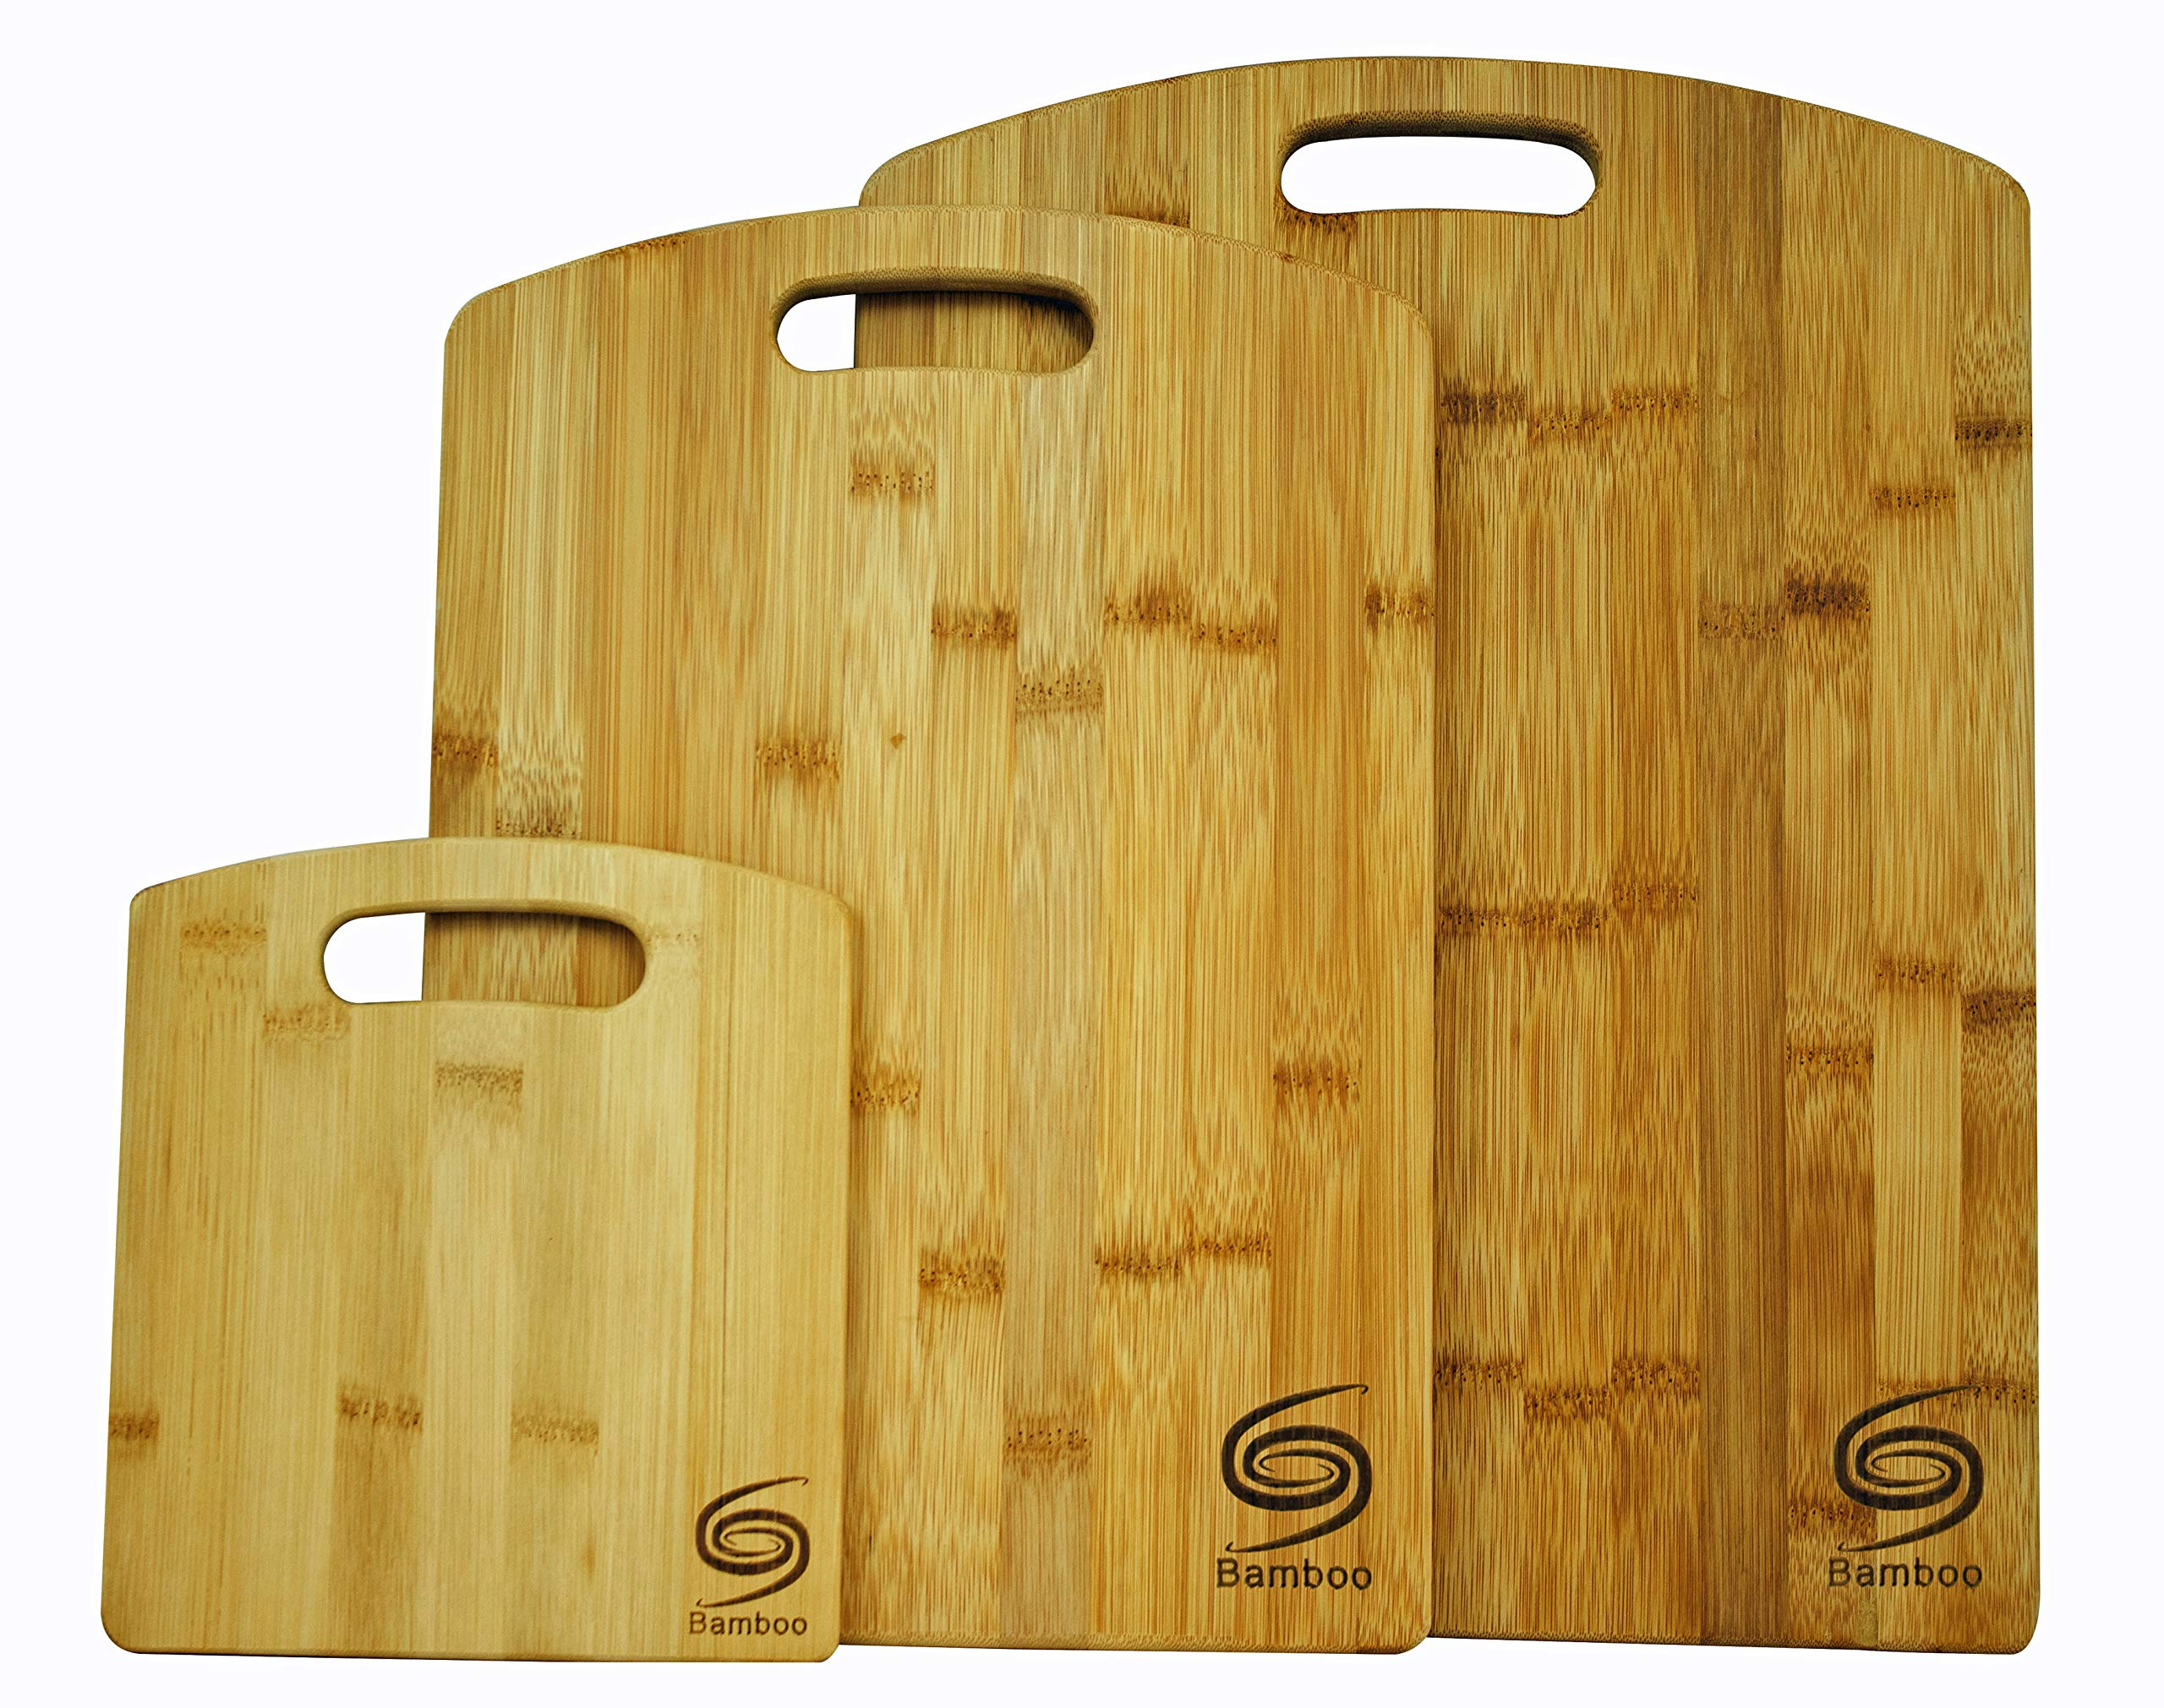 Organic Premium Bamboo Cutting Board Set of 3 Eco Friendly Truly Durable FDA Quality Chopping Boards for All Food Needs Every Kitchen Must Have Grand Sierra Designs by Grand Sierra Designs